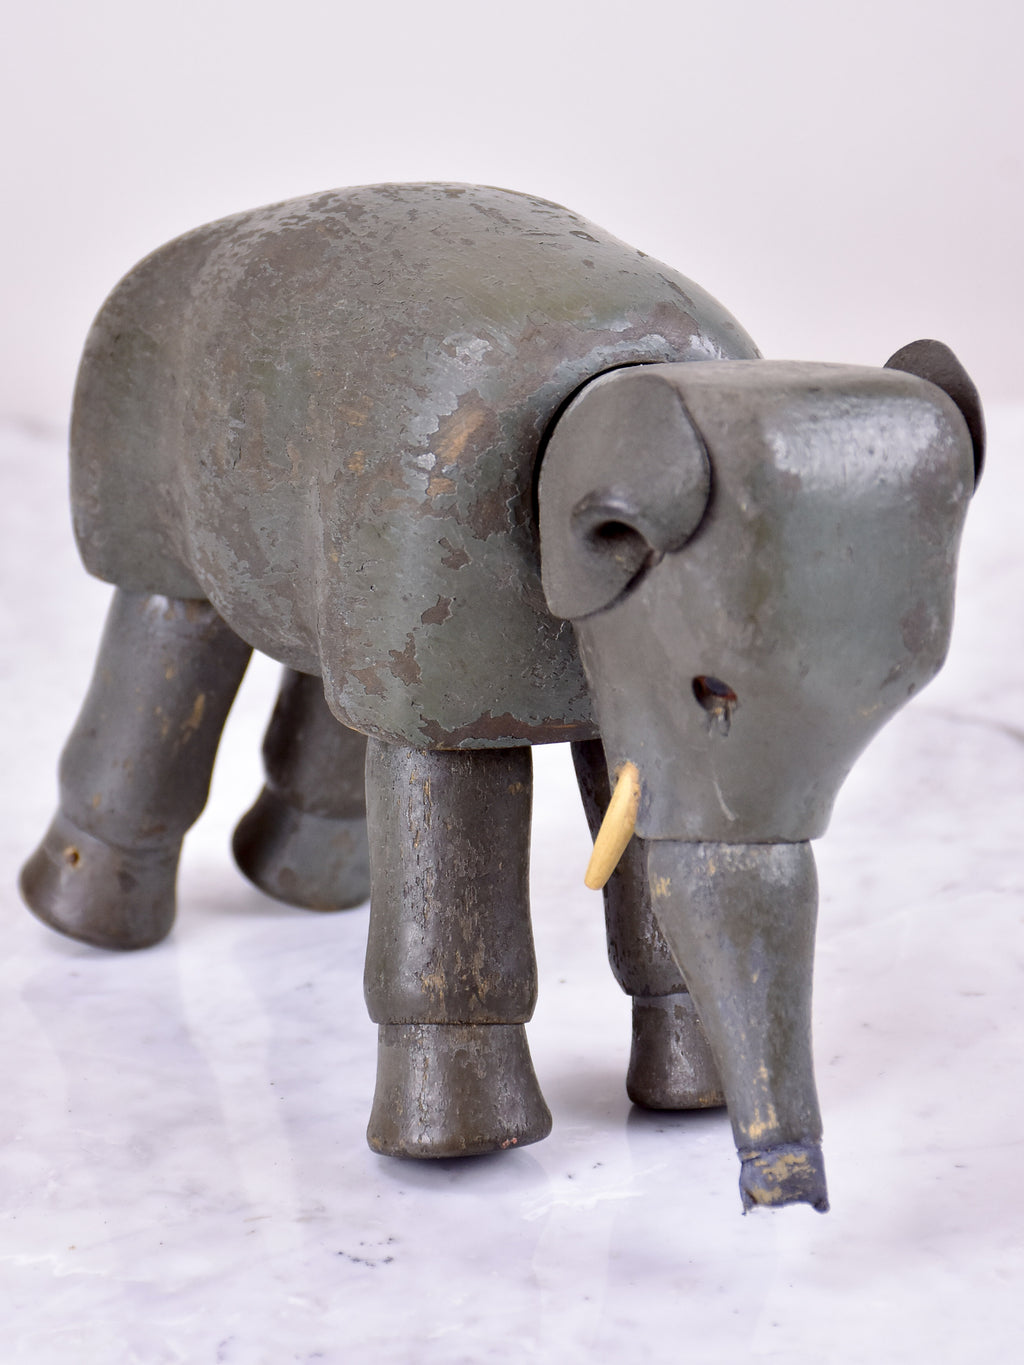 Antique French toy elephant - wooden